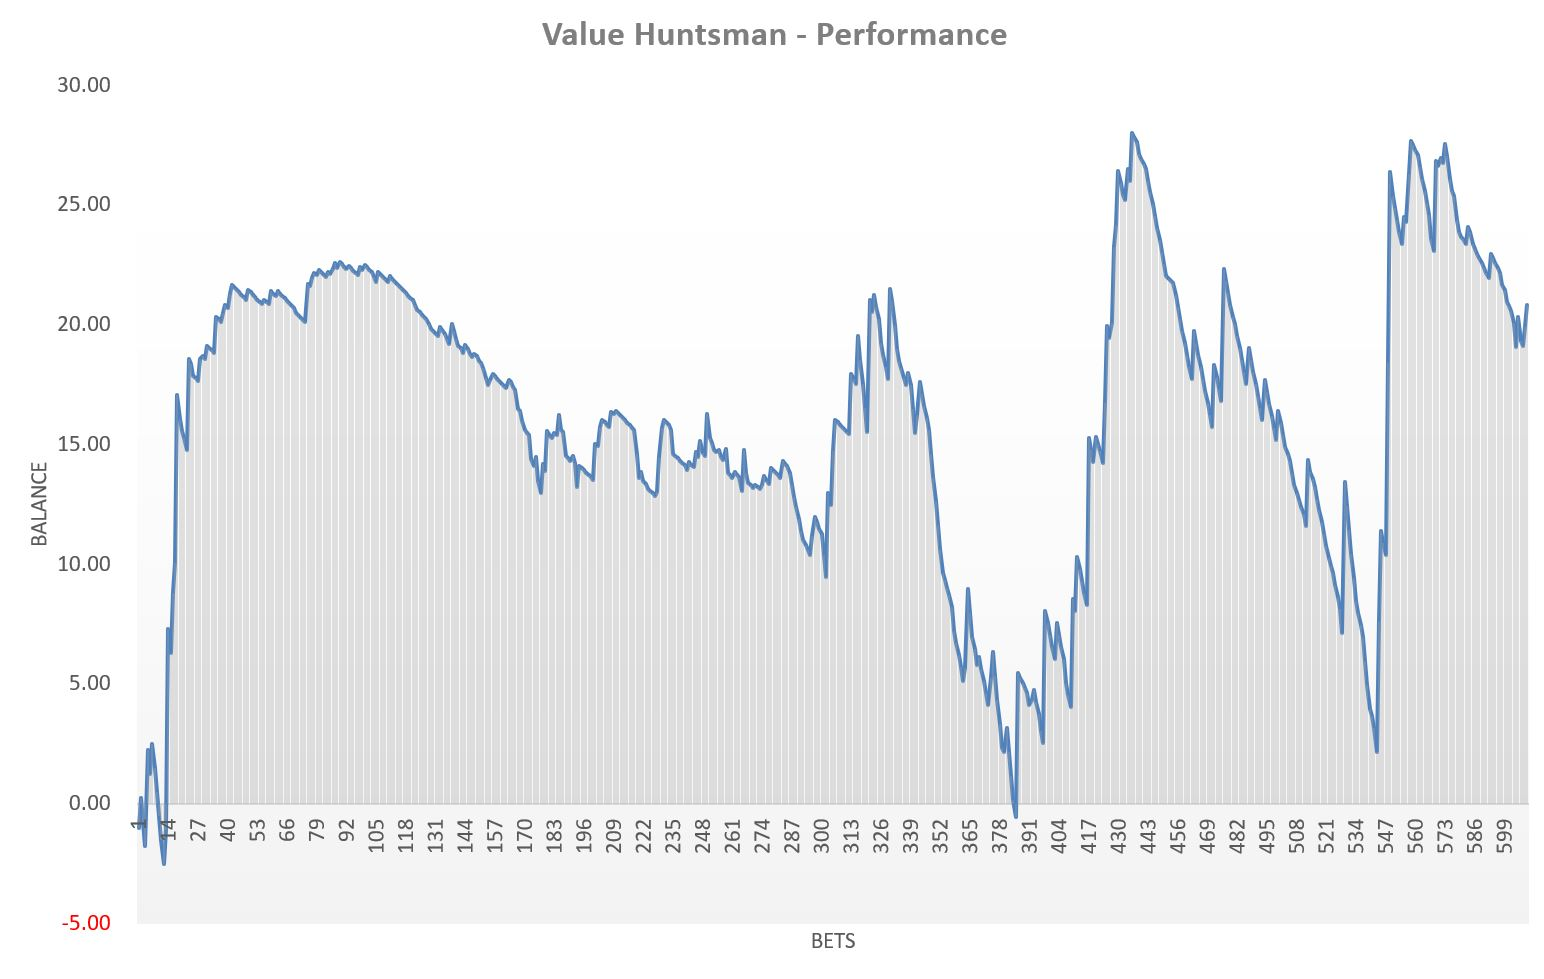 Value Huntsman